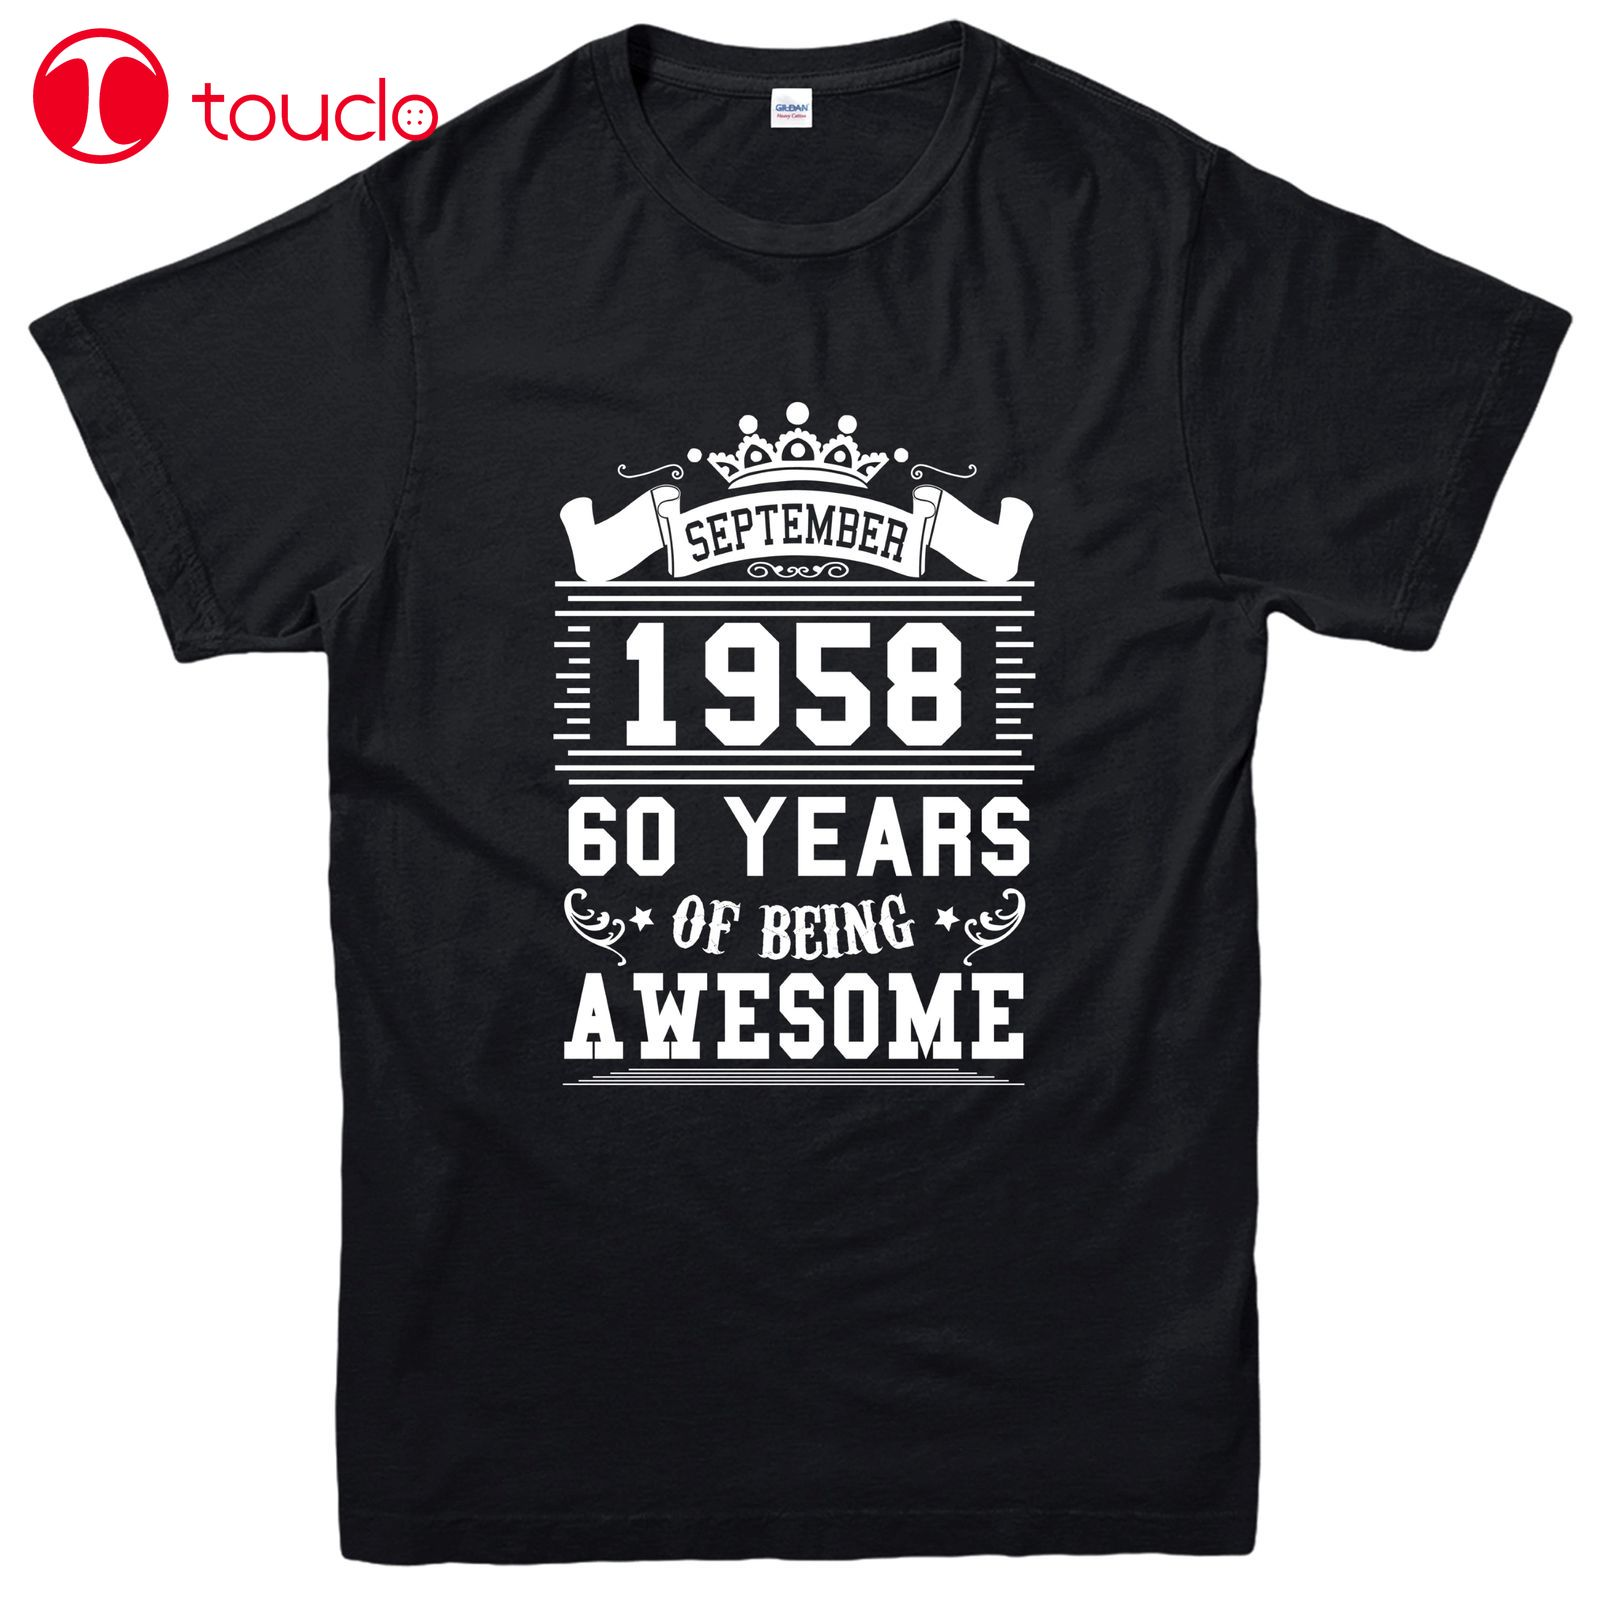 100% Cotton  Sixty Years Of Being Awesome T-Shirt, September 1958 Inspired Tee Top Tee Shirt Sweater